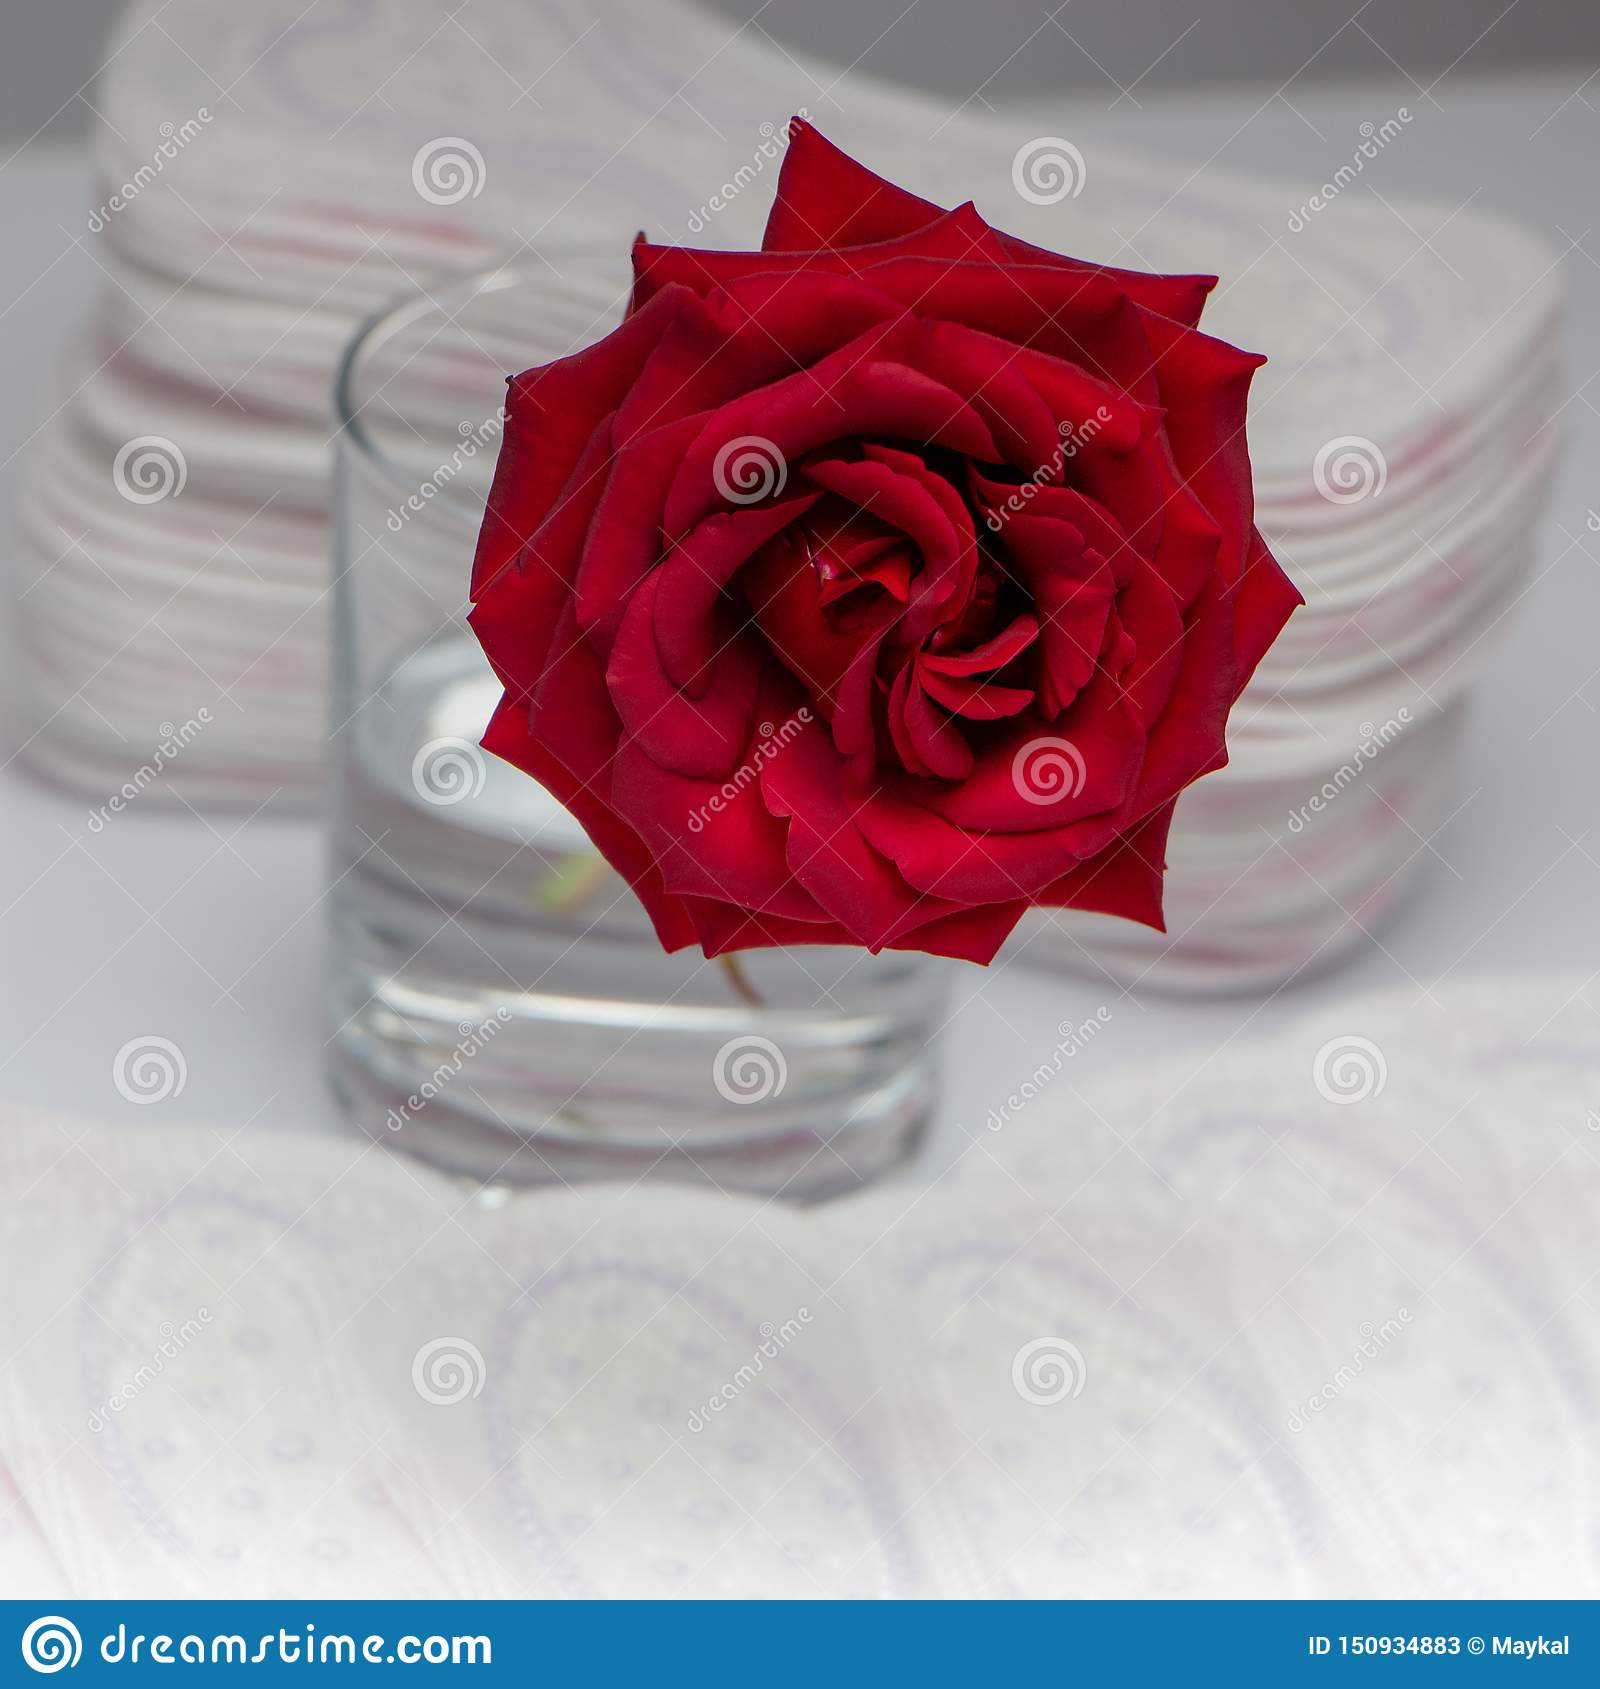 Red rose and sanitary pads. The concept of purity and freshness